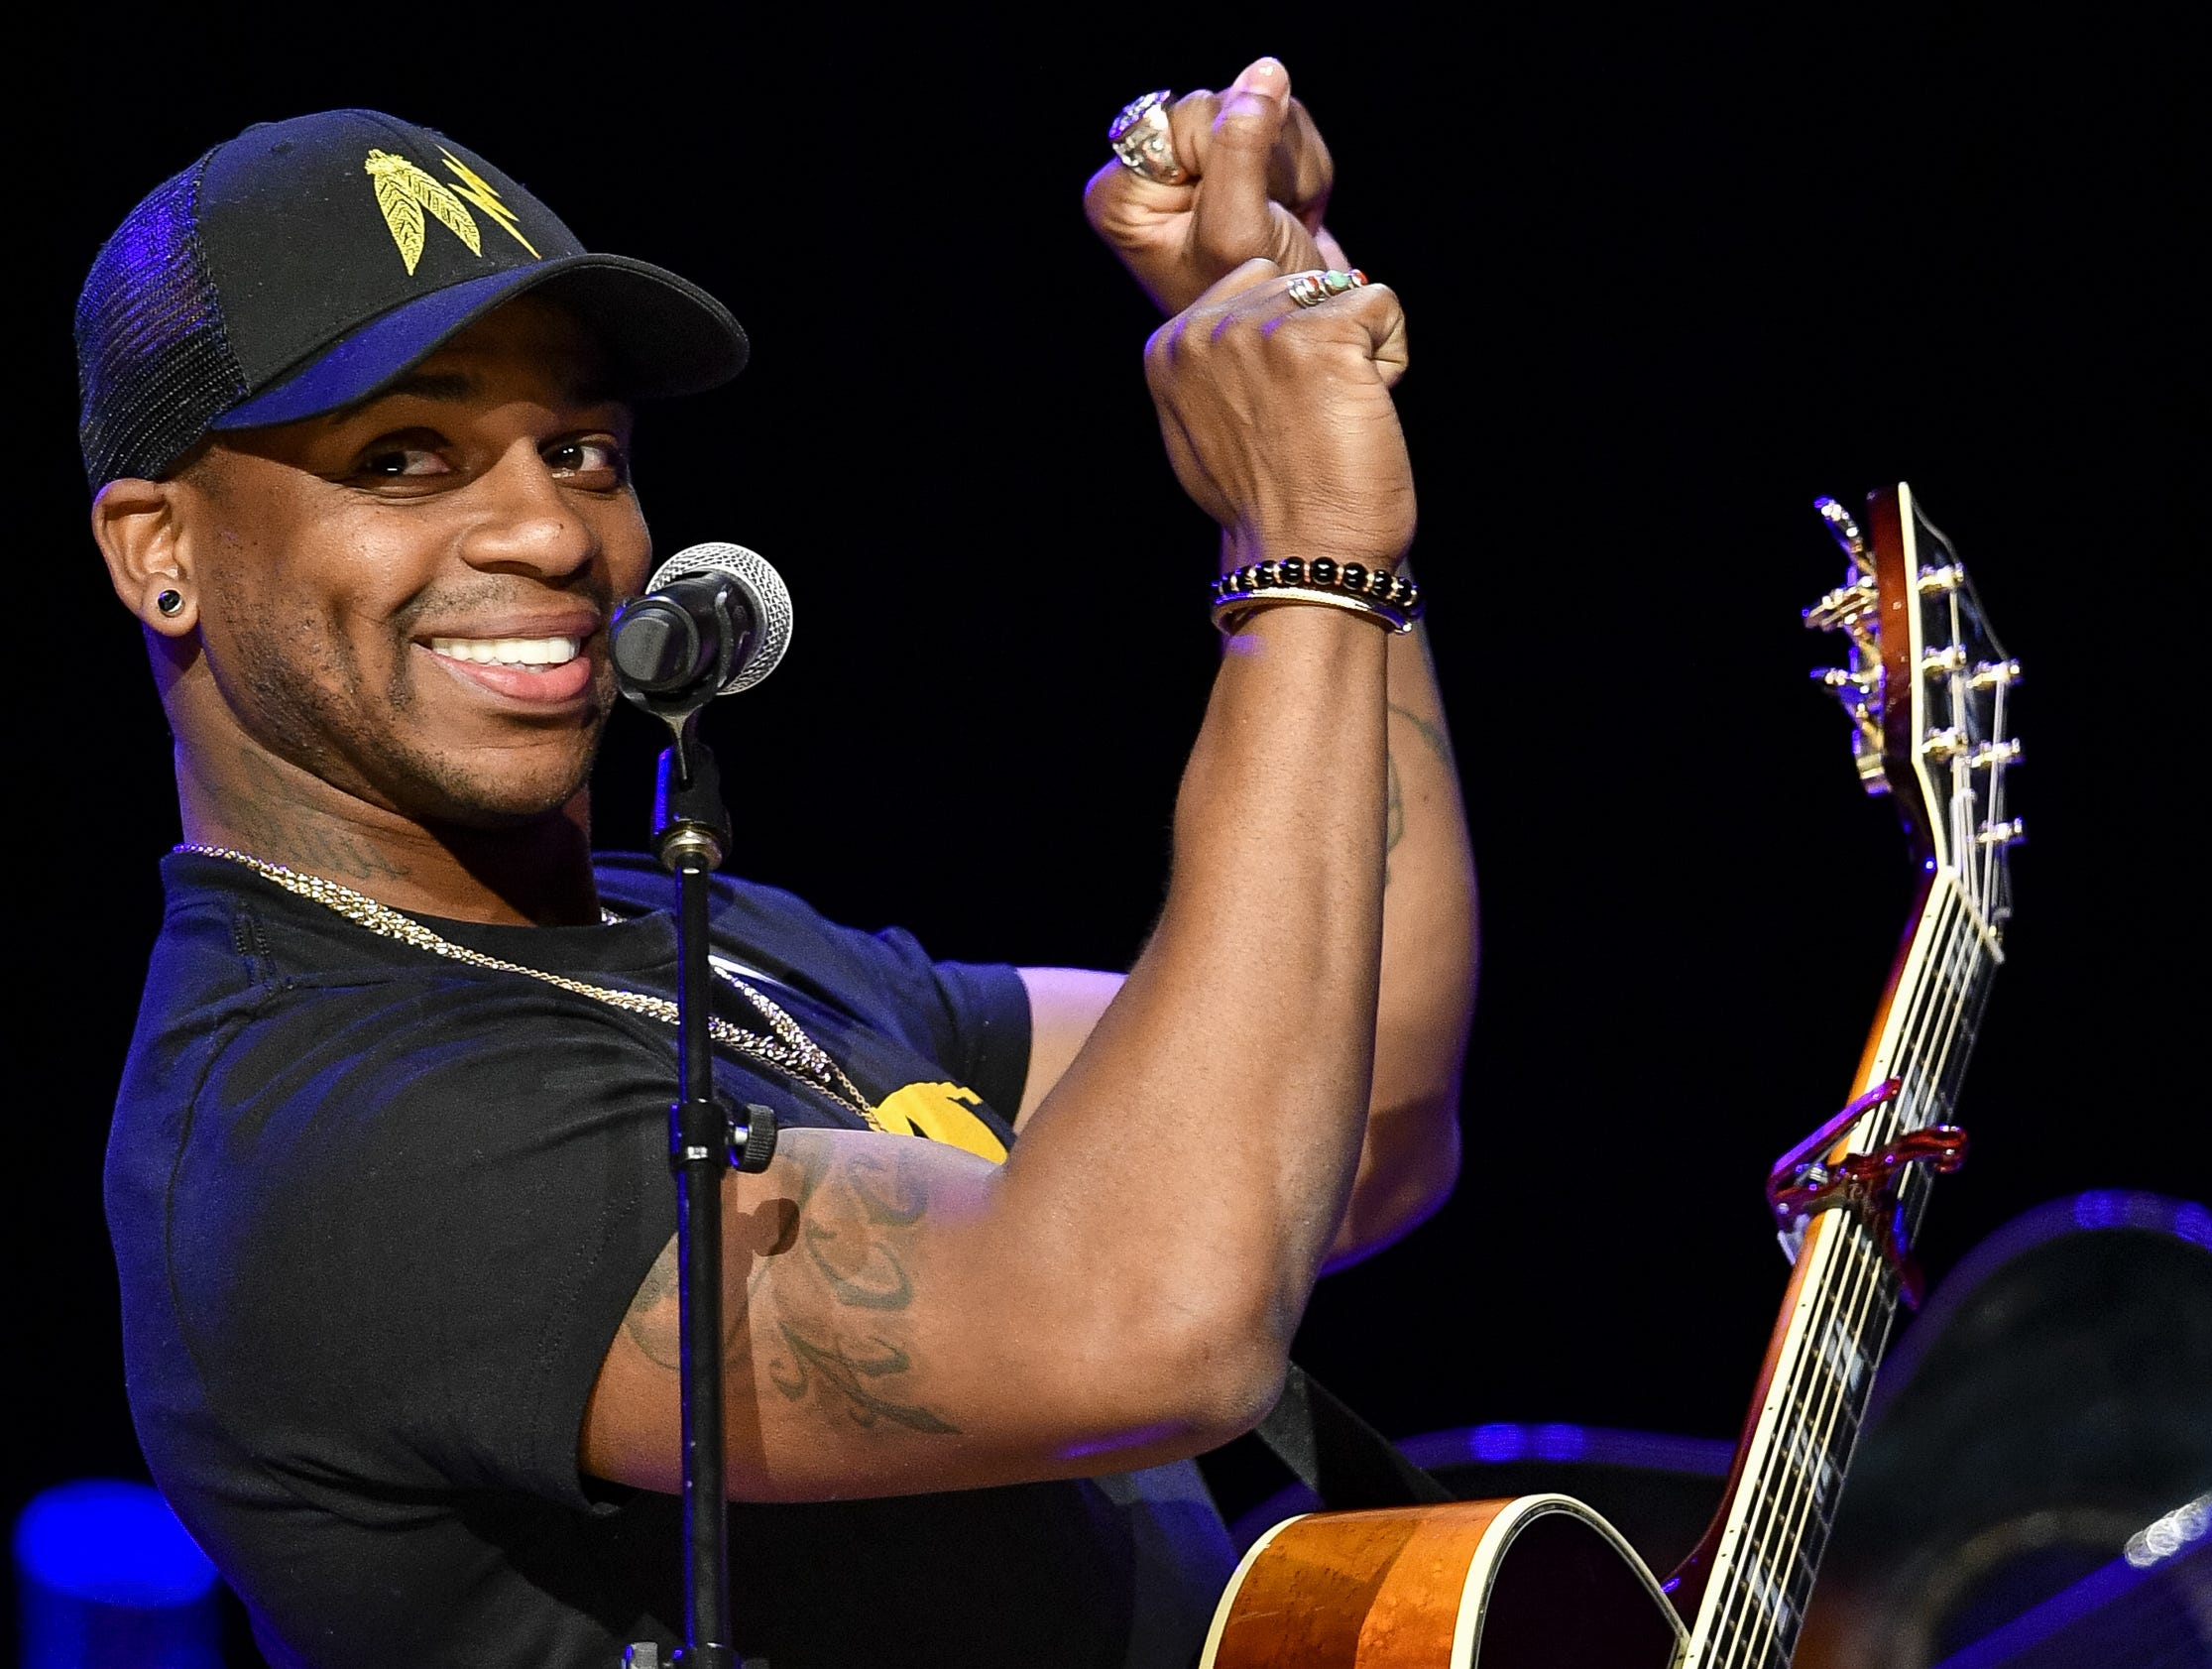 Jimmie Allen is scheduled to play the Chevy Riverfront Stage at CMA Fest 2019.